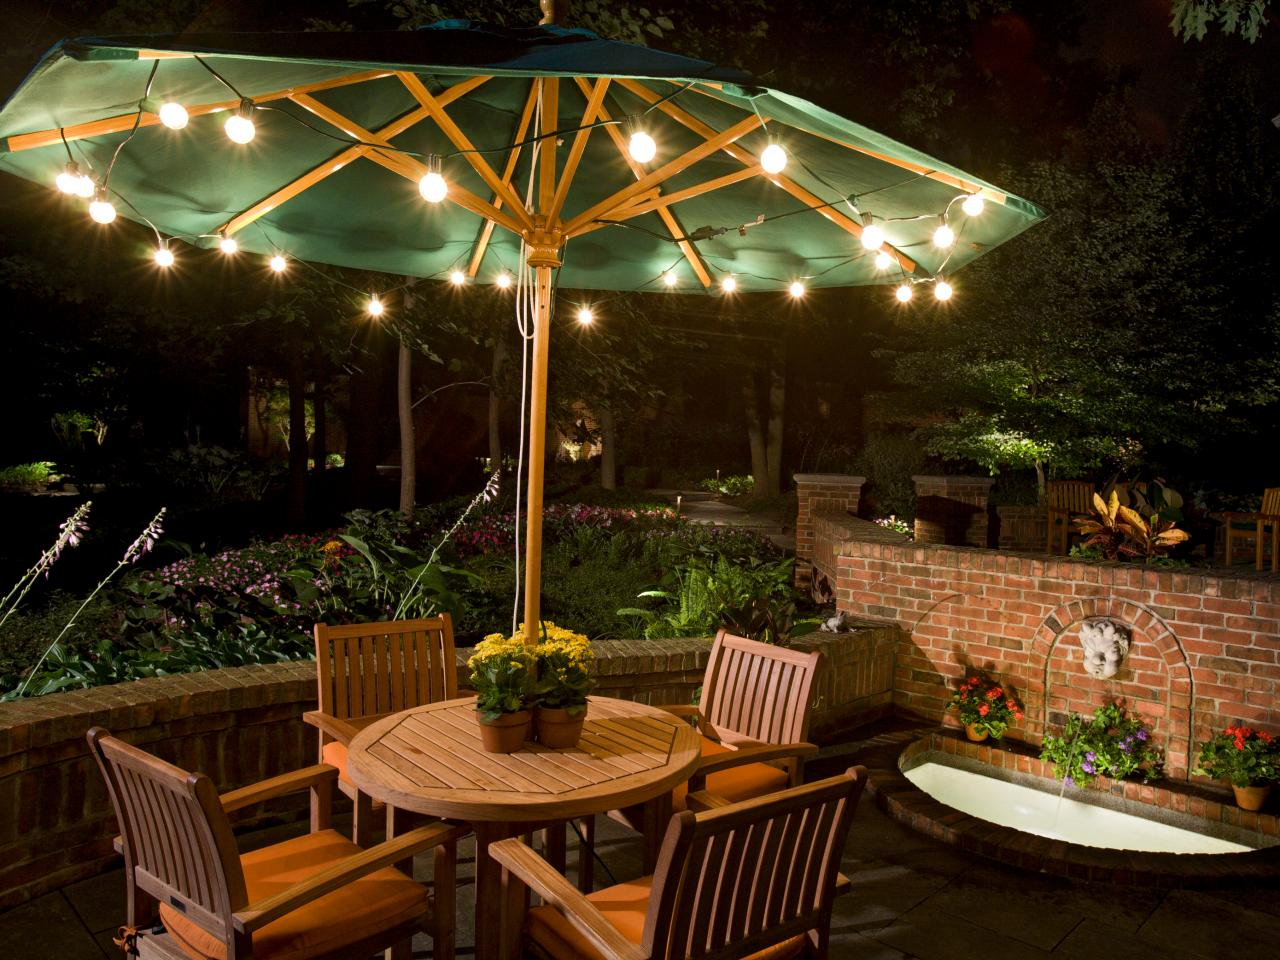 Outdoor String Lights Pinterest : string lights for patio pinterest just b.CAUSE